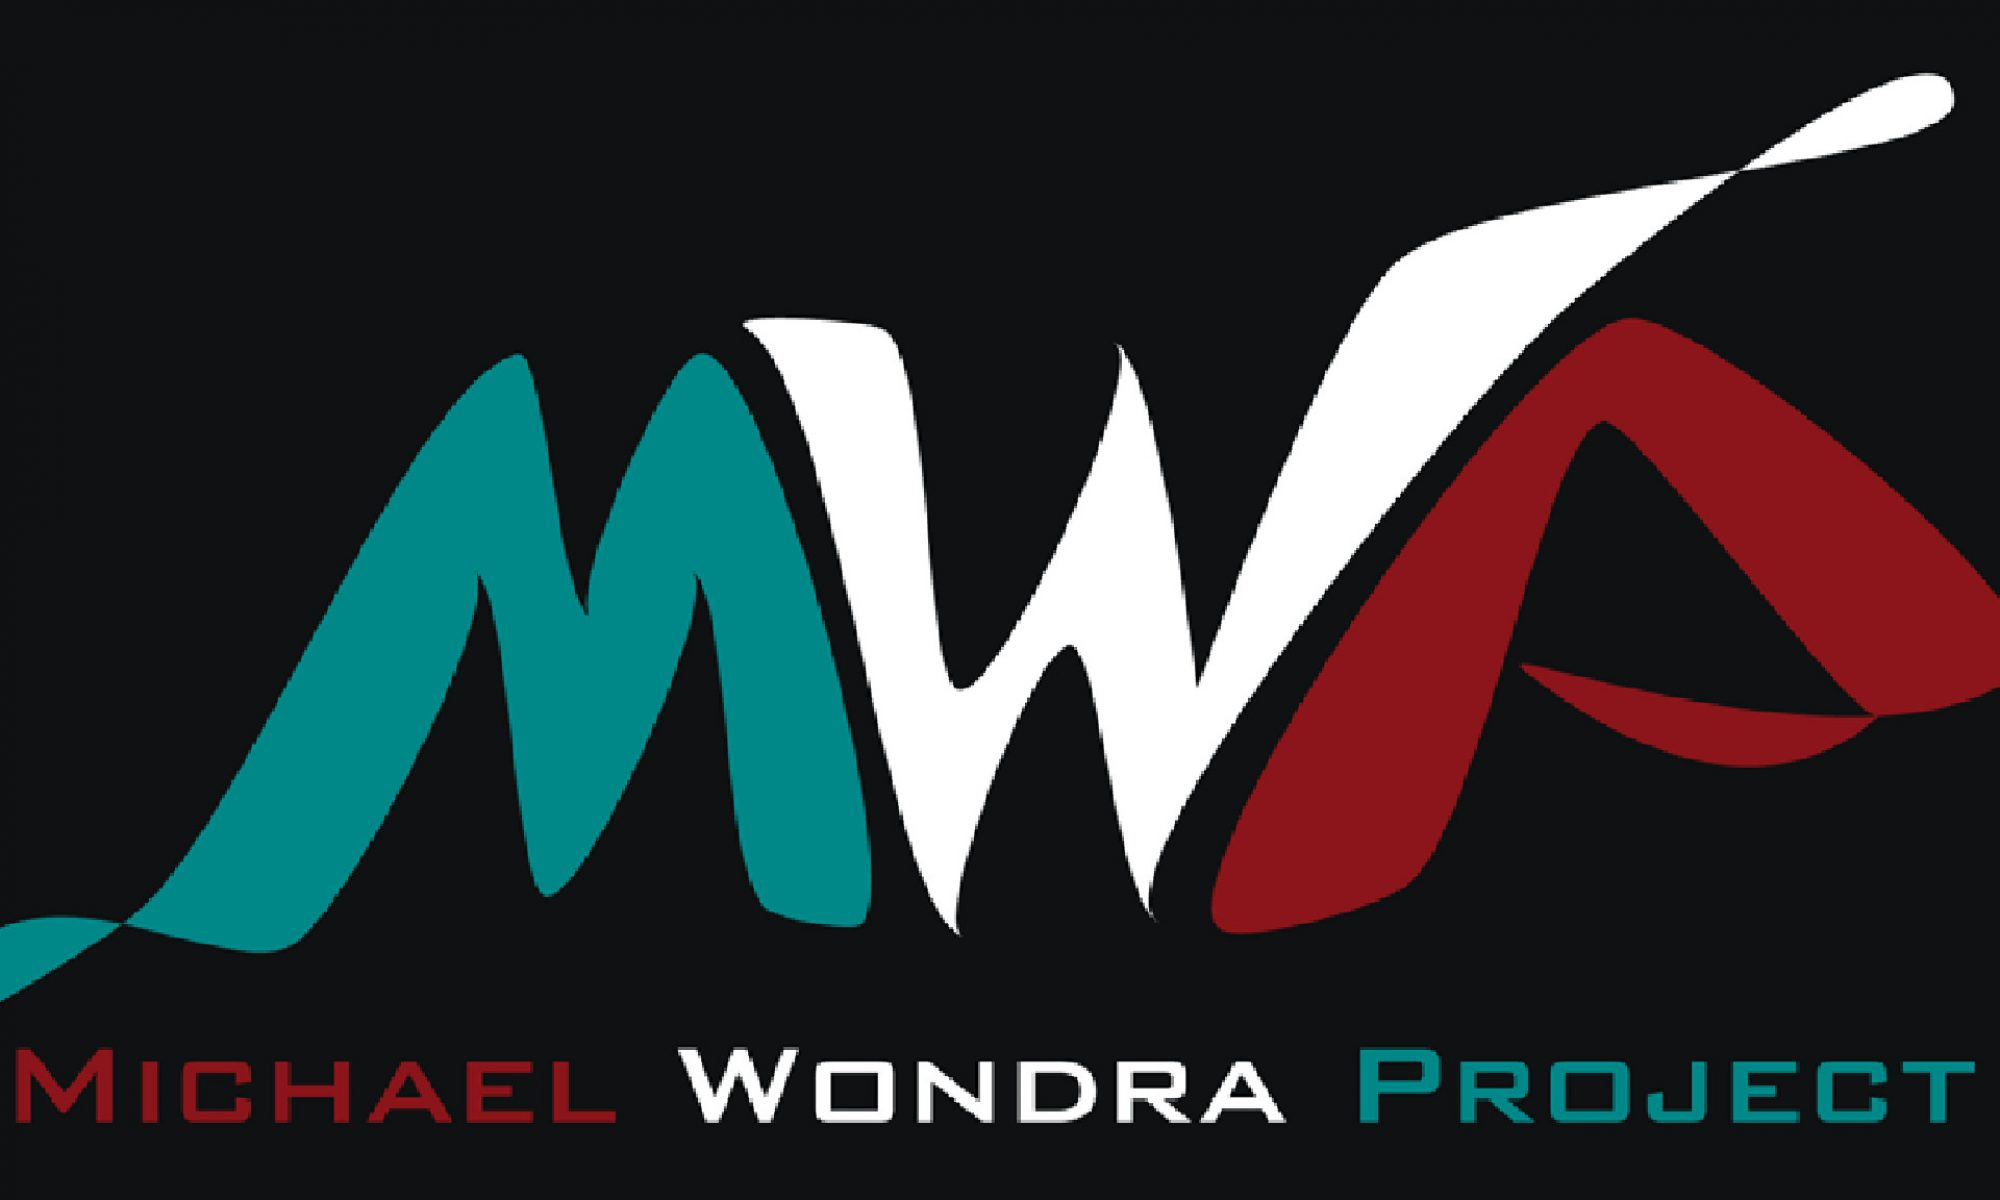 Michael Wondra Project